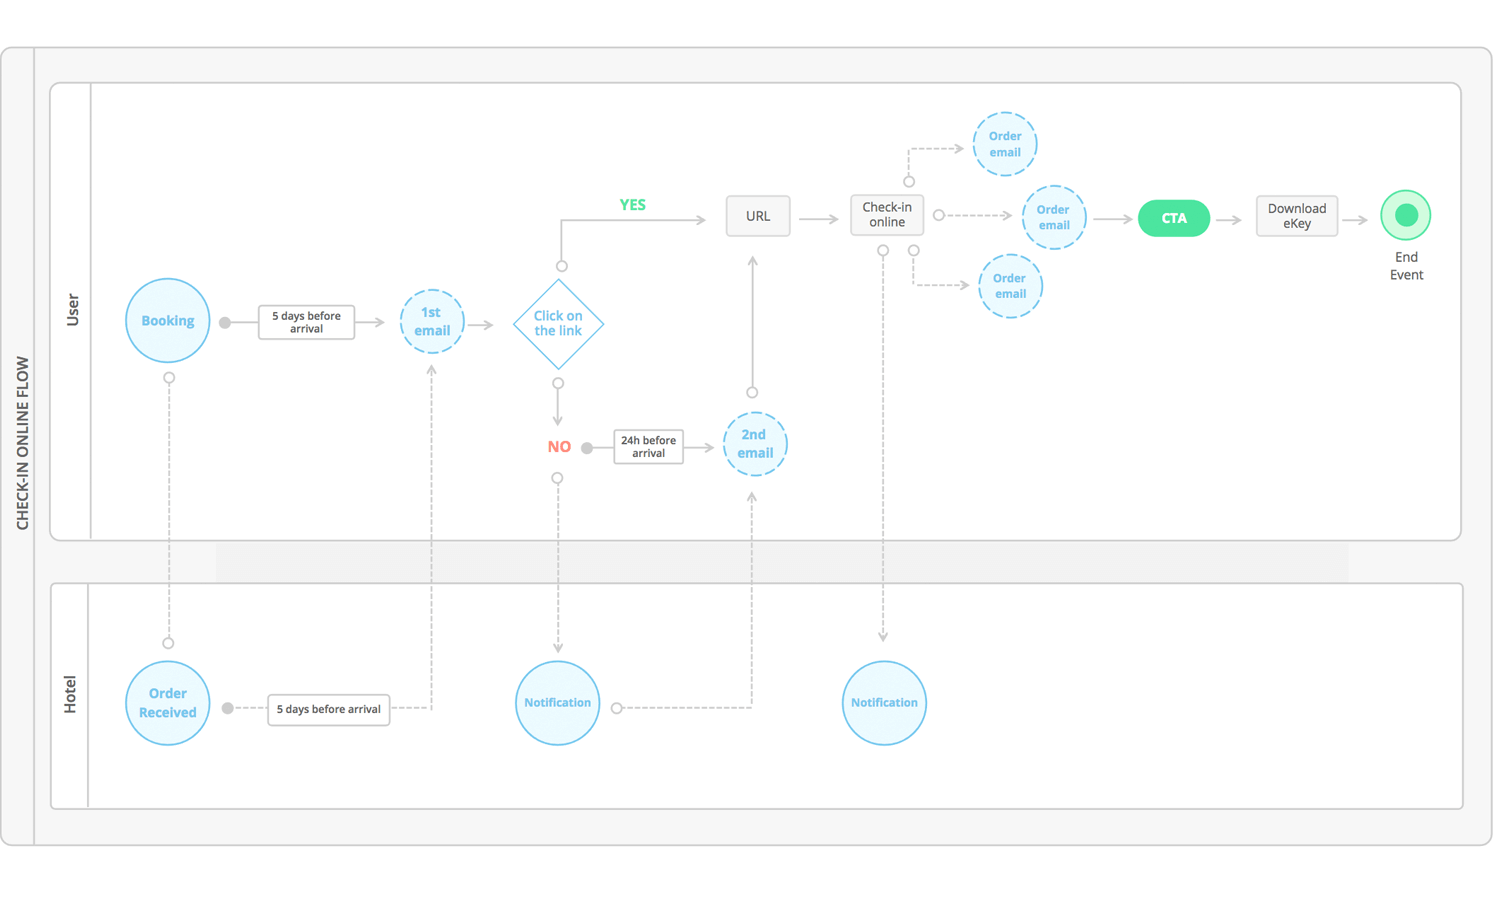 Wireframe user-friendly flowcharts in 5 simple steps